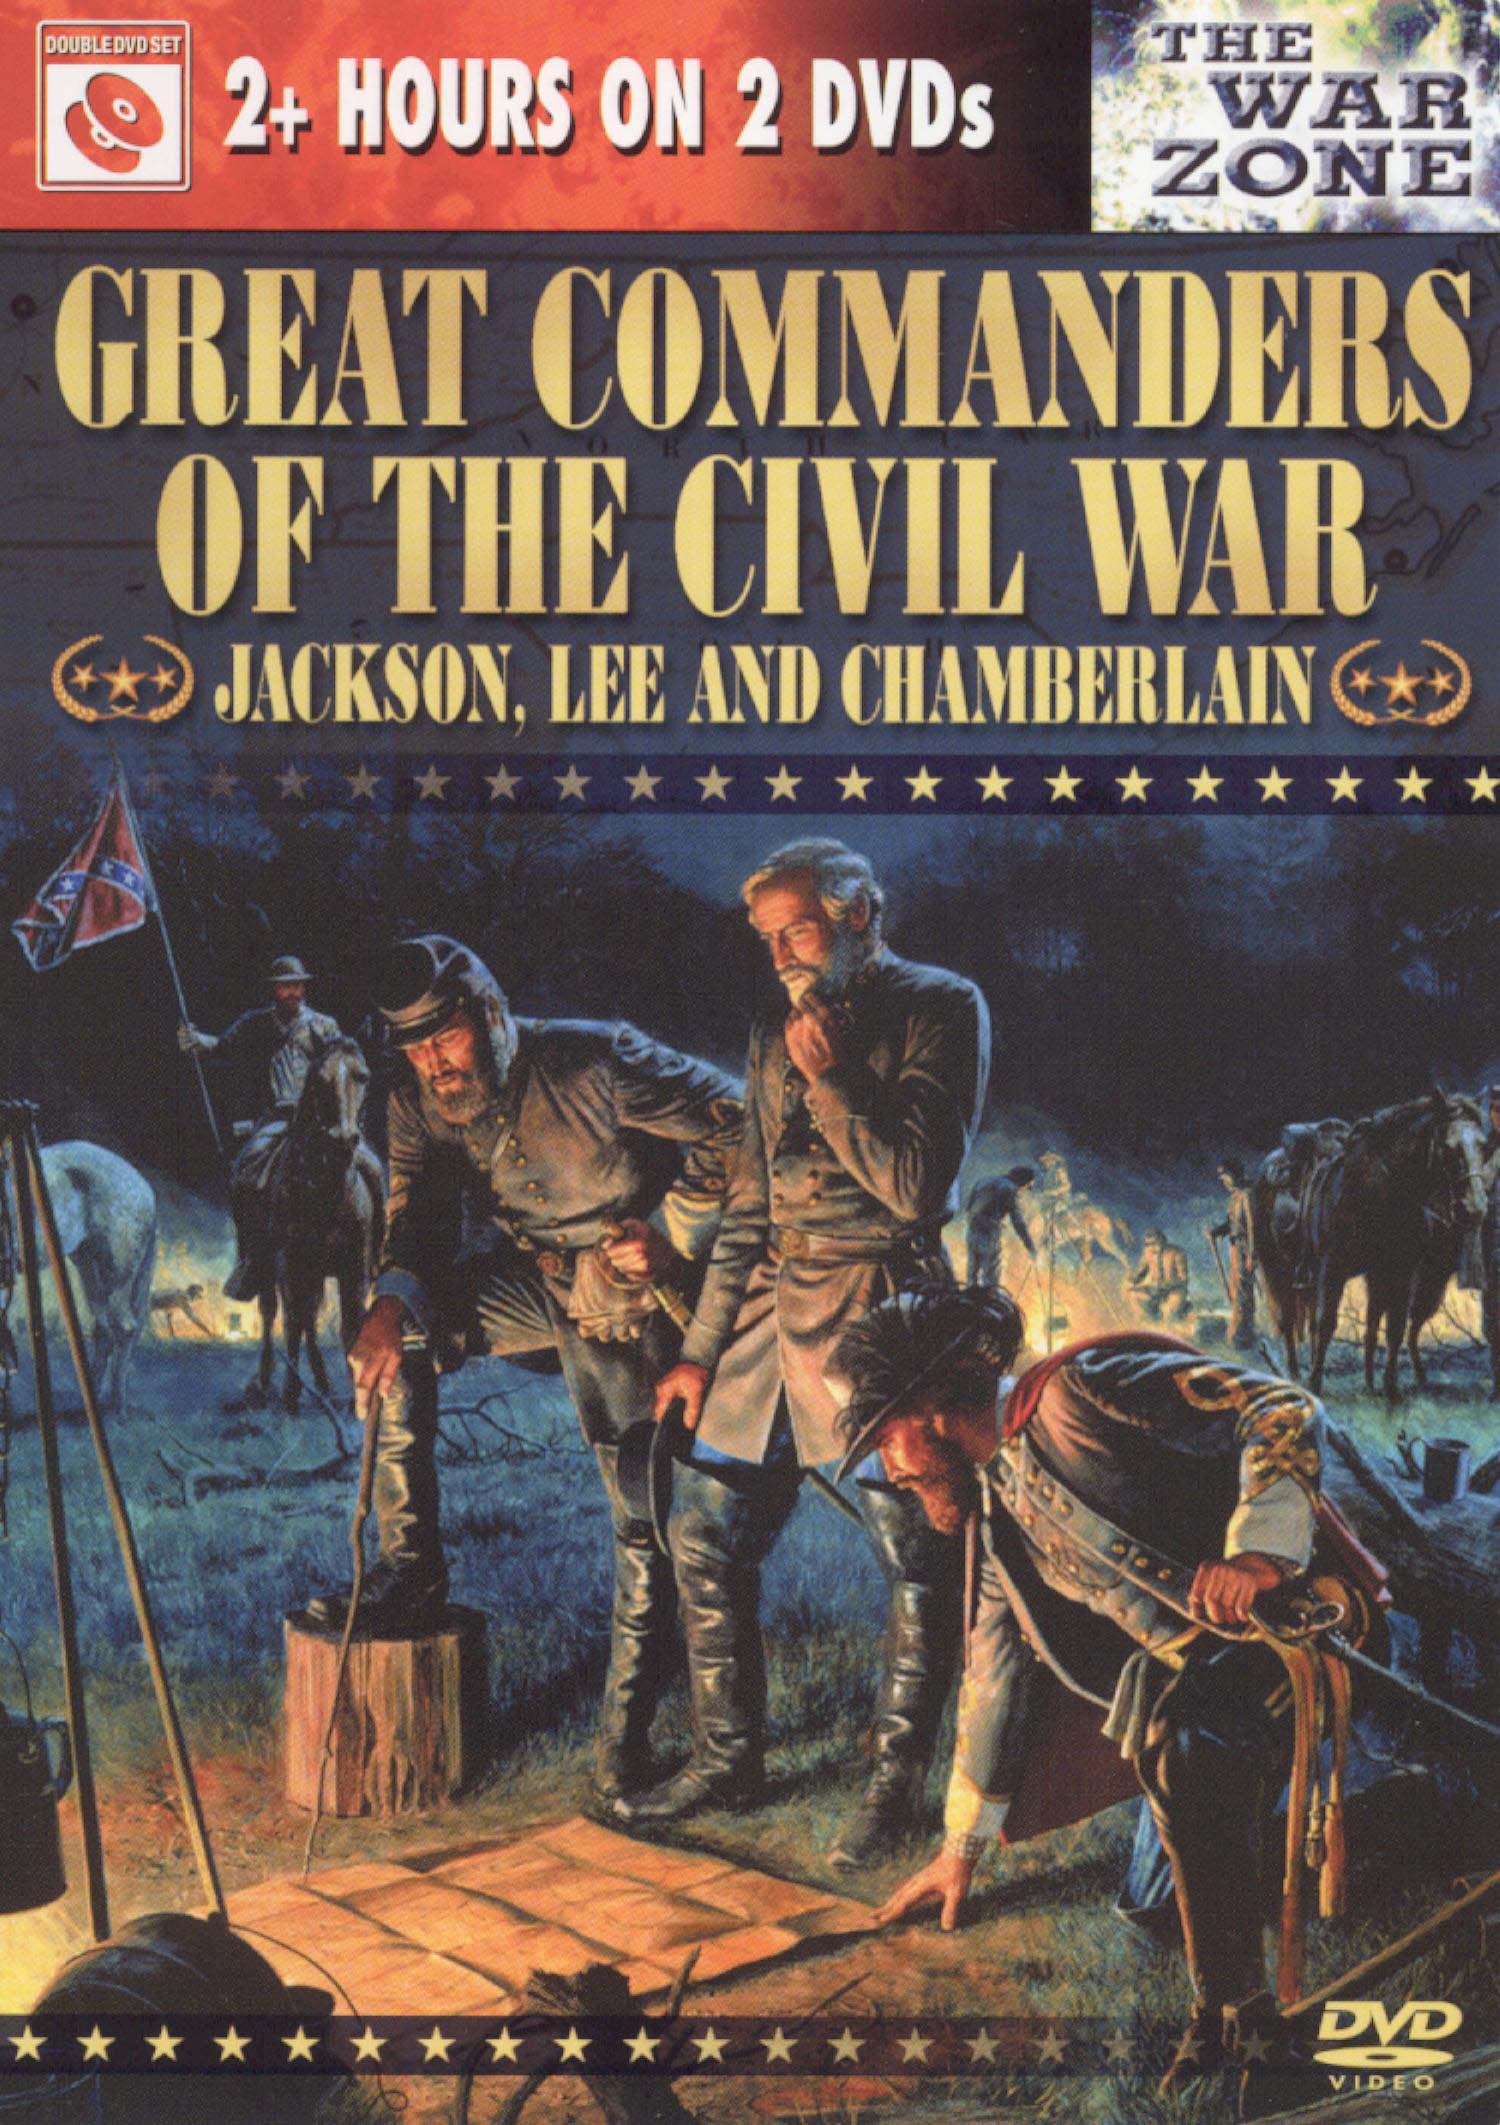 Great Commanders of the Civil War: Jackson, Lee and Chamberlain